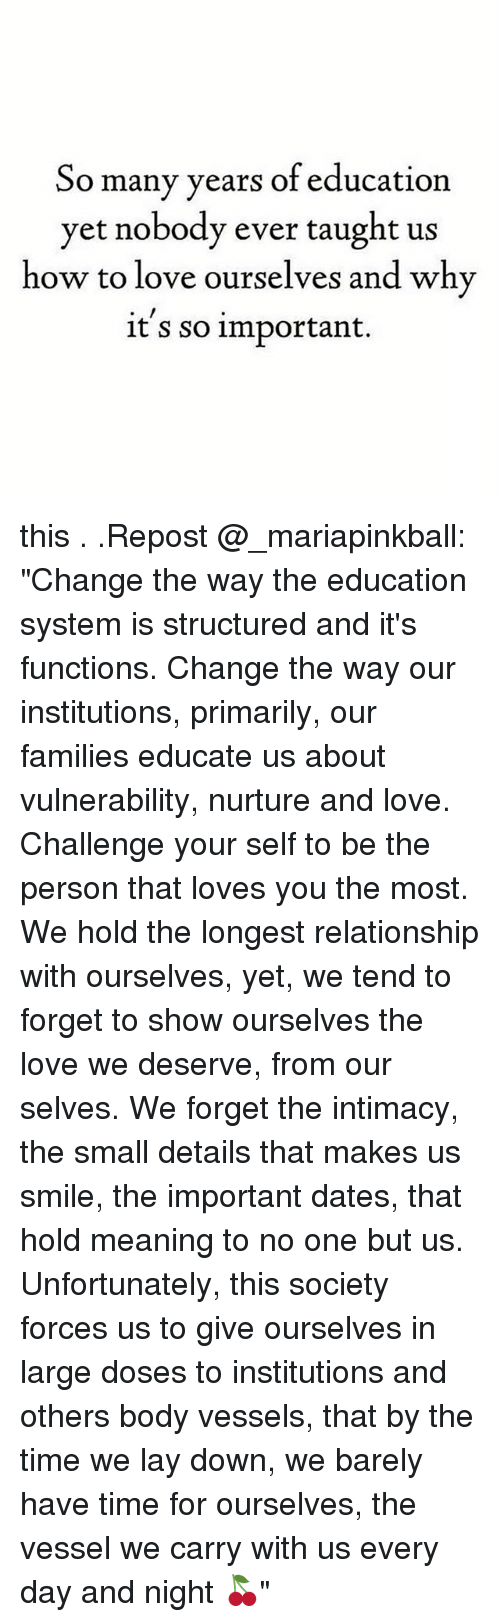 "Love, Memes, and How To: So many years of education  yet nobody ever taught us  how to love ourselves and why  it s so important. this . .Repost @_mariapinkball: ""Change the way the education system is structured and it's functions. Change the way our institutions, primarily, our families educate us about vulnerability, nurture and love. Challenge your self to be the person that loves you the most. We hold the longest relationship with ourselves, yet, we tend to forget to show ourselves the love we deserve, from our selves. We forget the intimacy, the small details that makes us smile, the important dates, that hold meaning to no one but us. Unfortunately, this society forces us to give ourselves in large doses to institutions and others body vessels, that by the time we lay down, we barely have time for ourselves, the vessel we carry with us every day and night 🍒"""